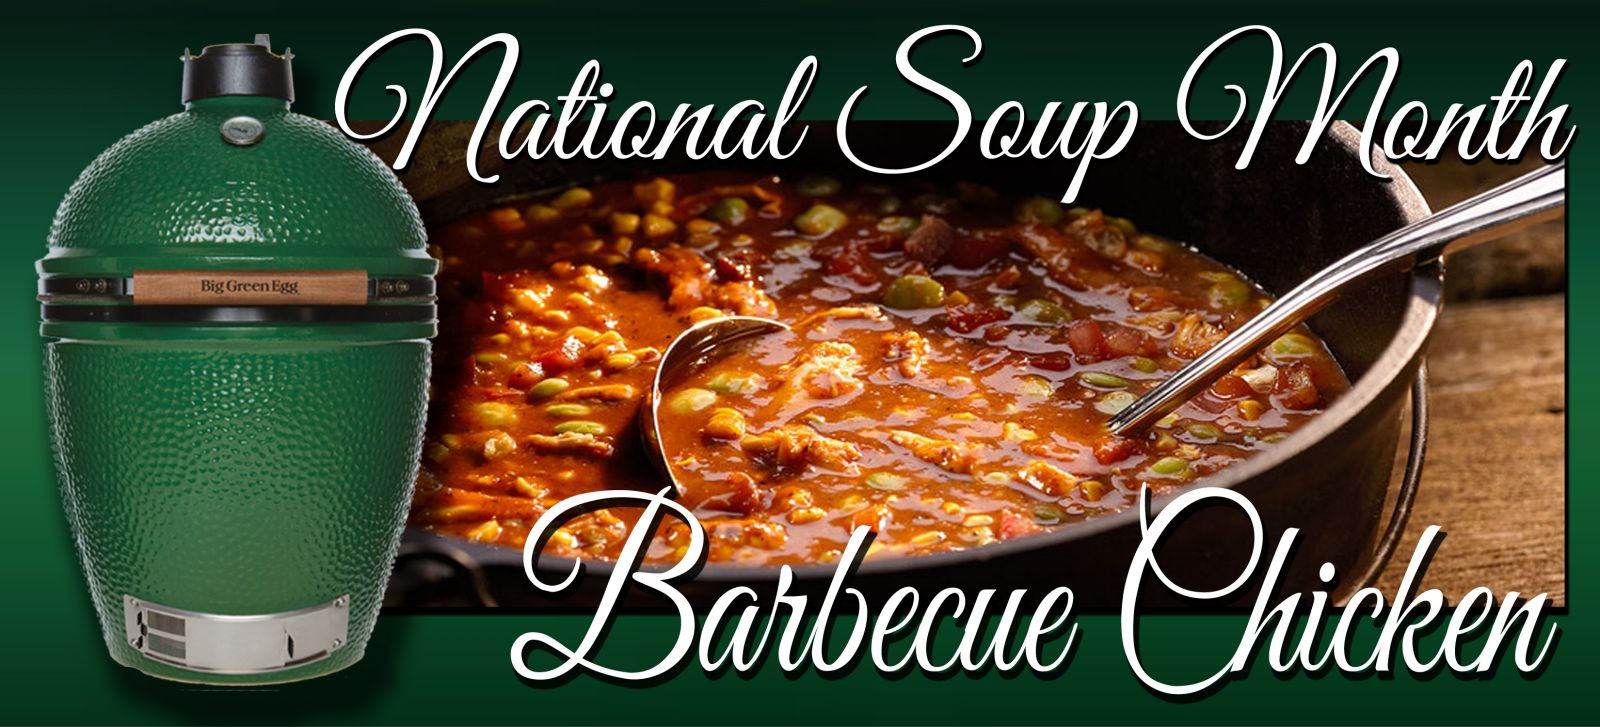 January is National Soup Month!